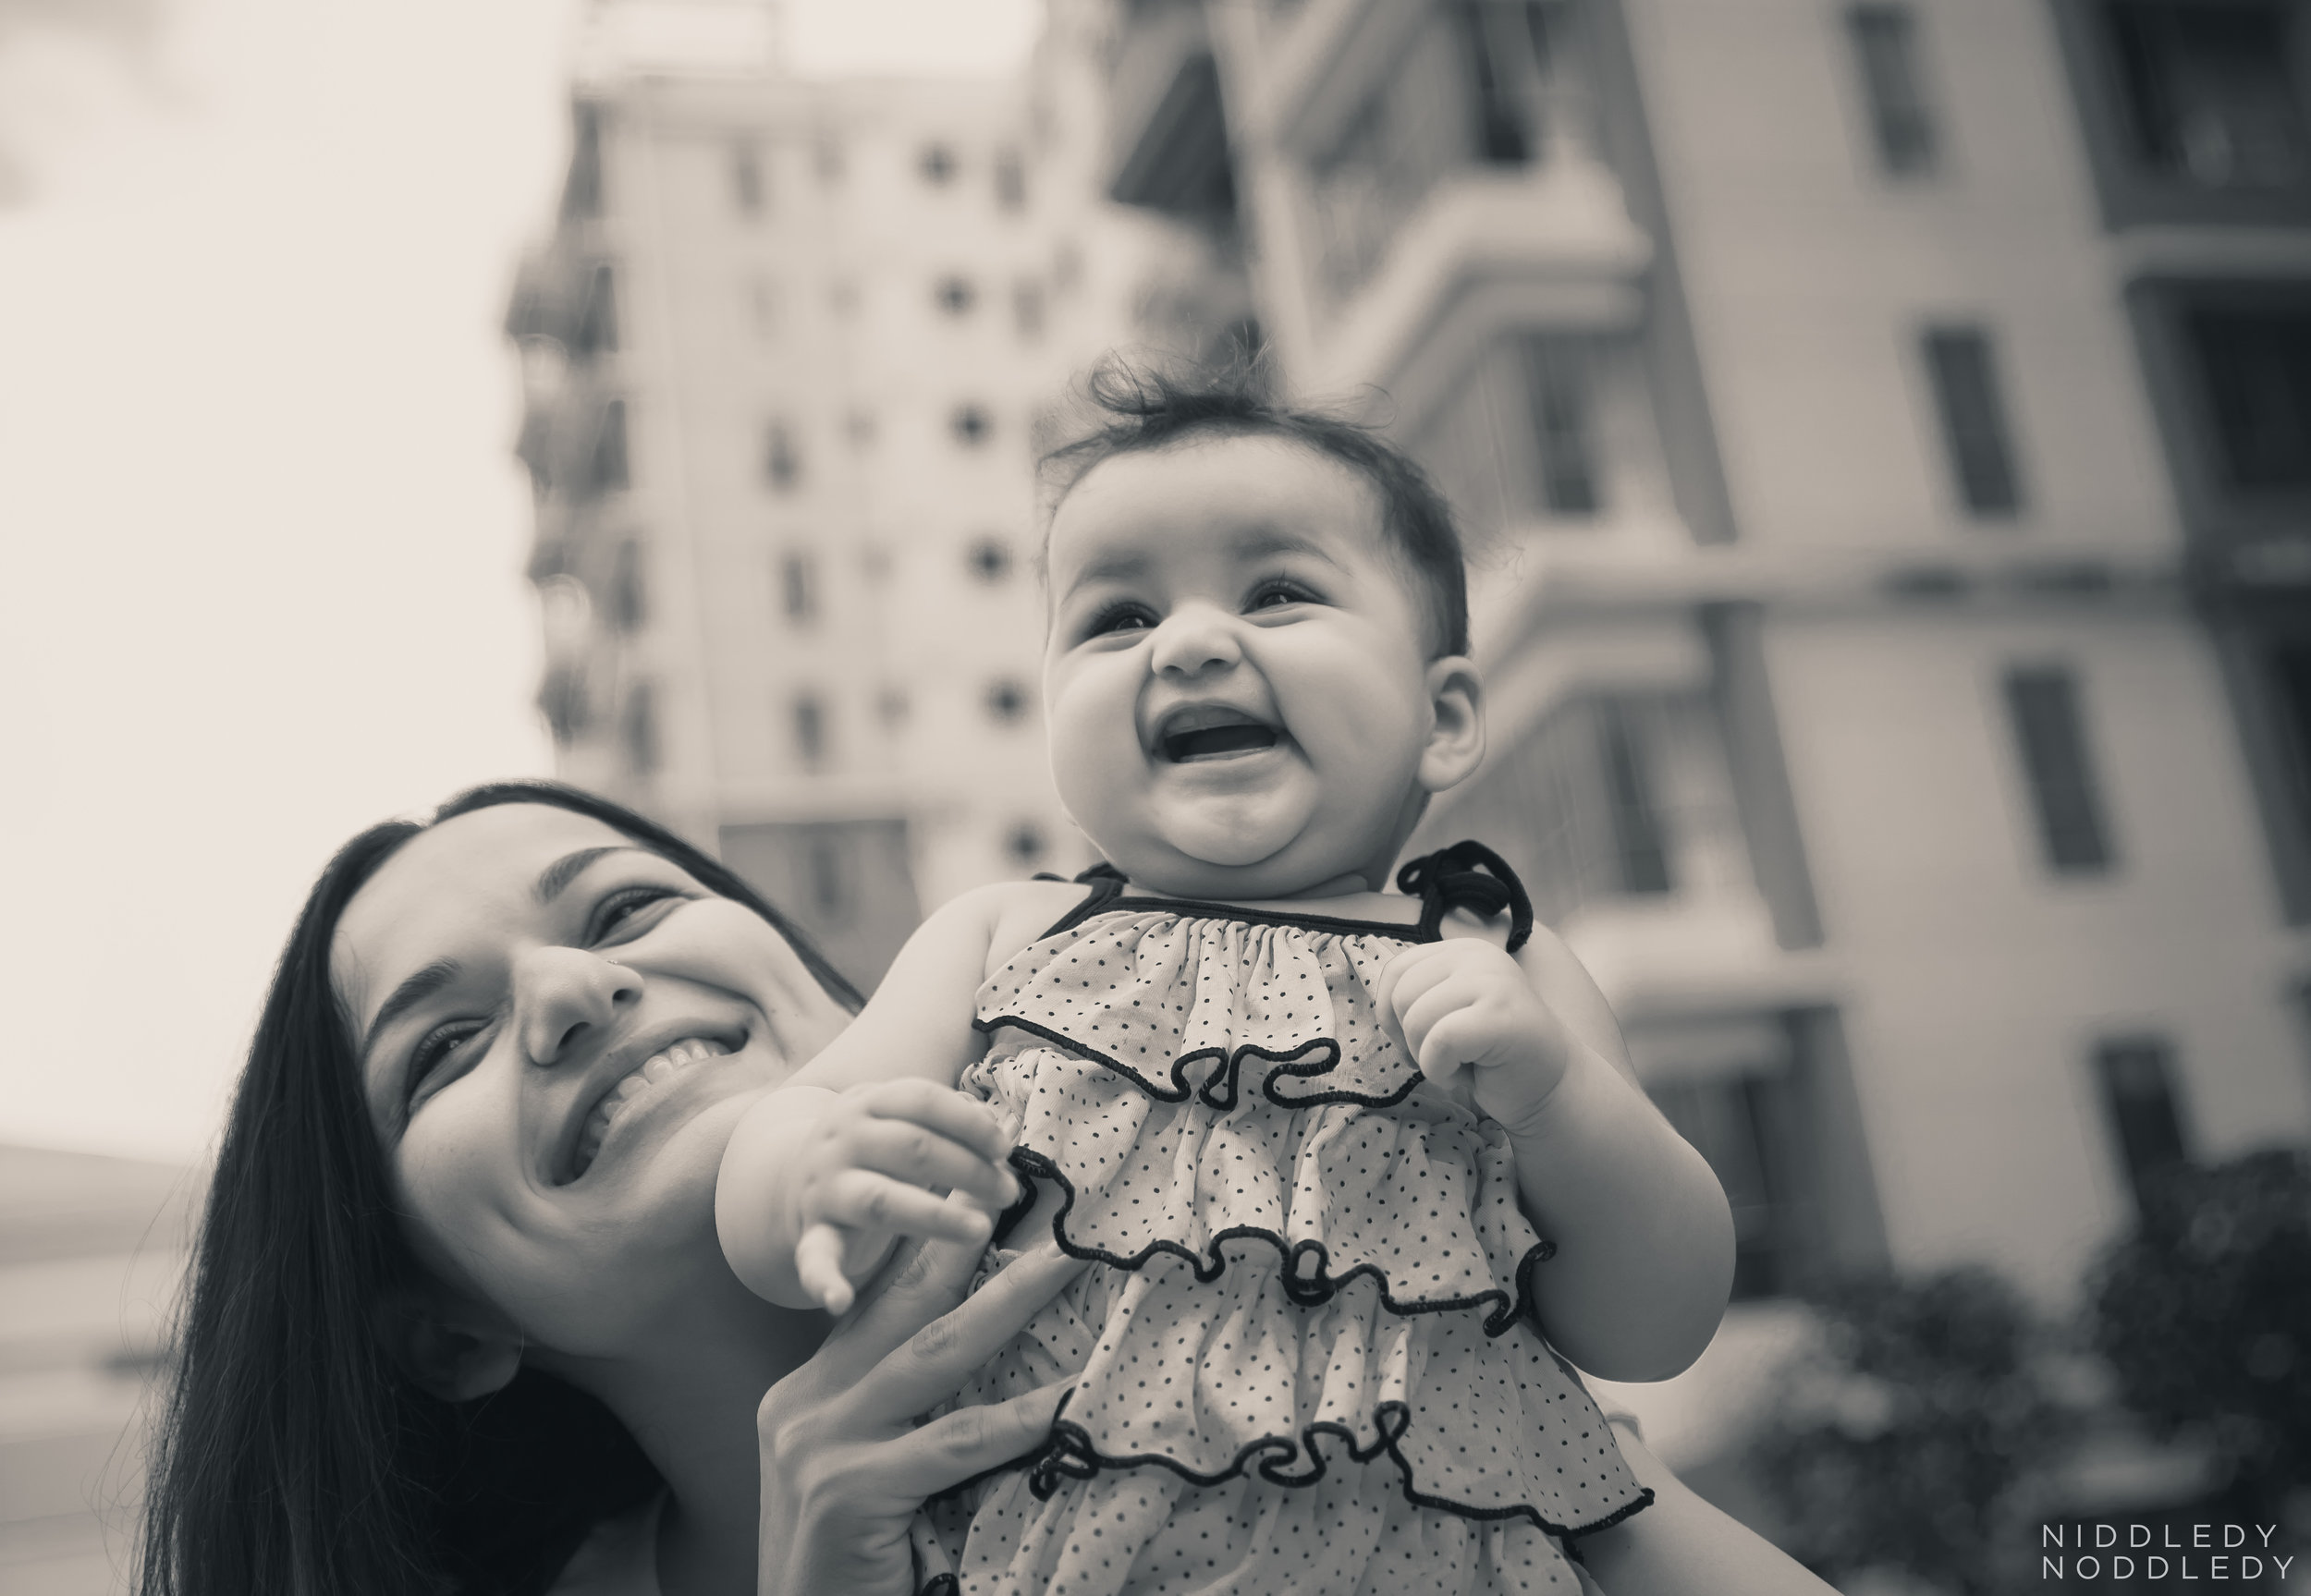 Aditi Baby Day Shoot ❤ NiddledyNoddledy.com ~ Bumps to Babies Photography, Kolkata - 01.jpg